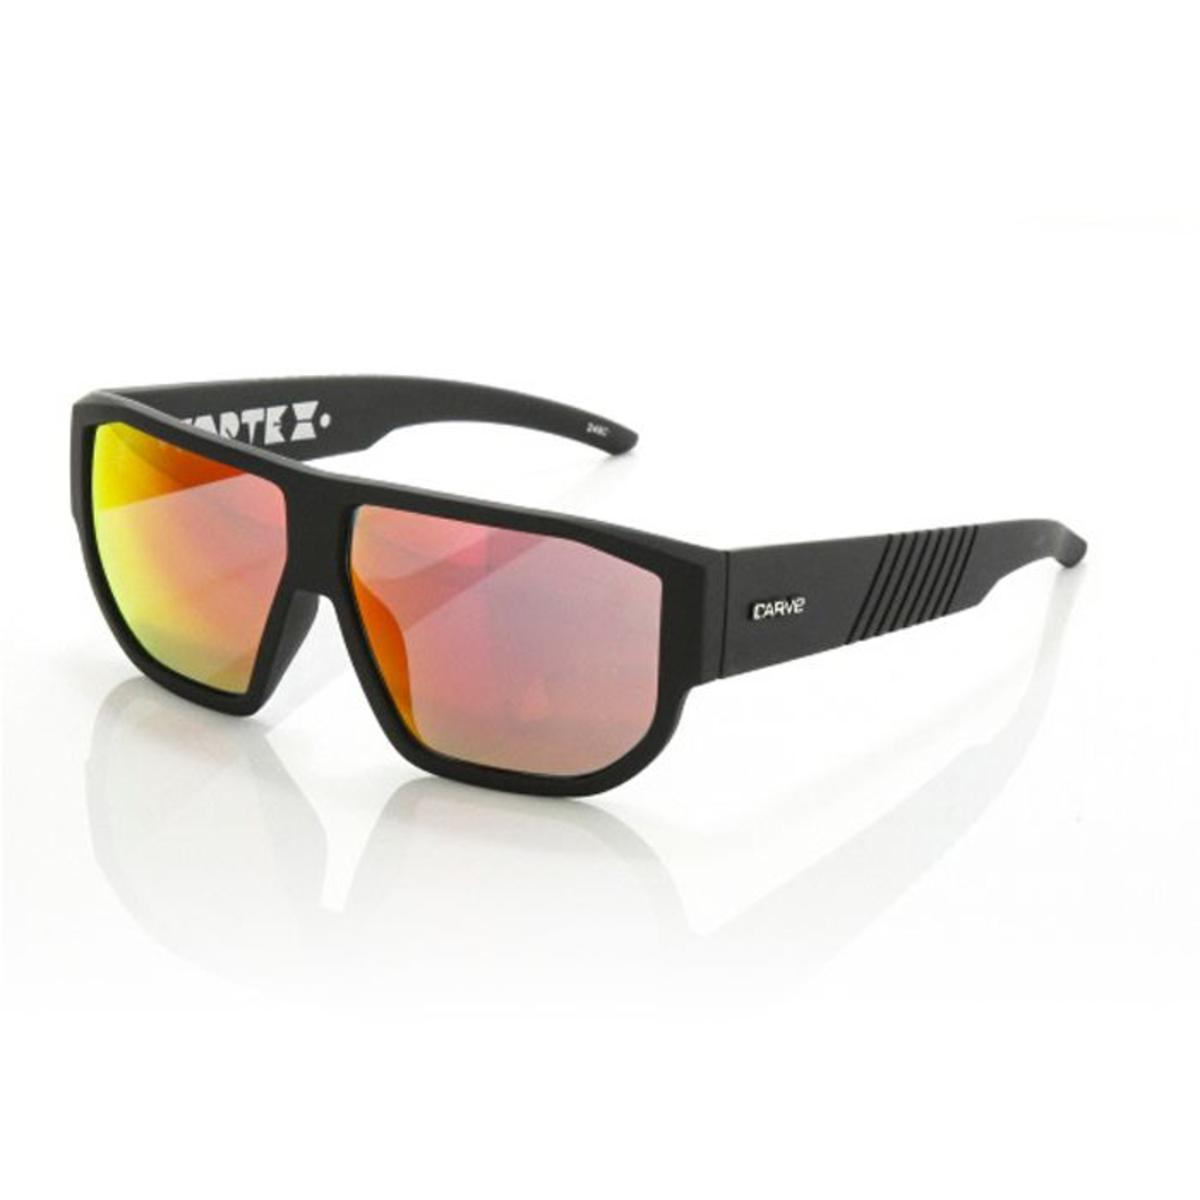 CARVE Vortex Men's Sunglasses